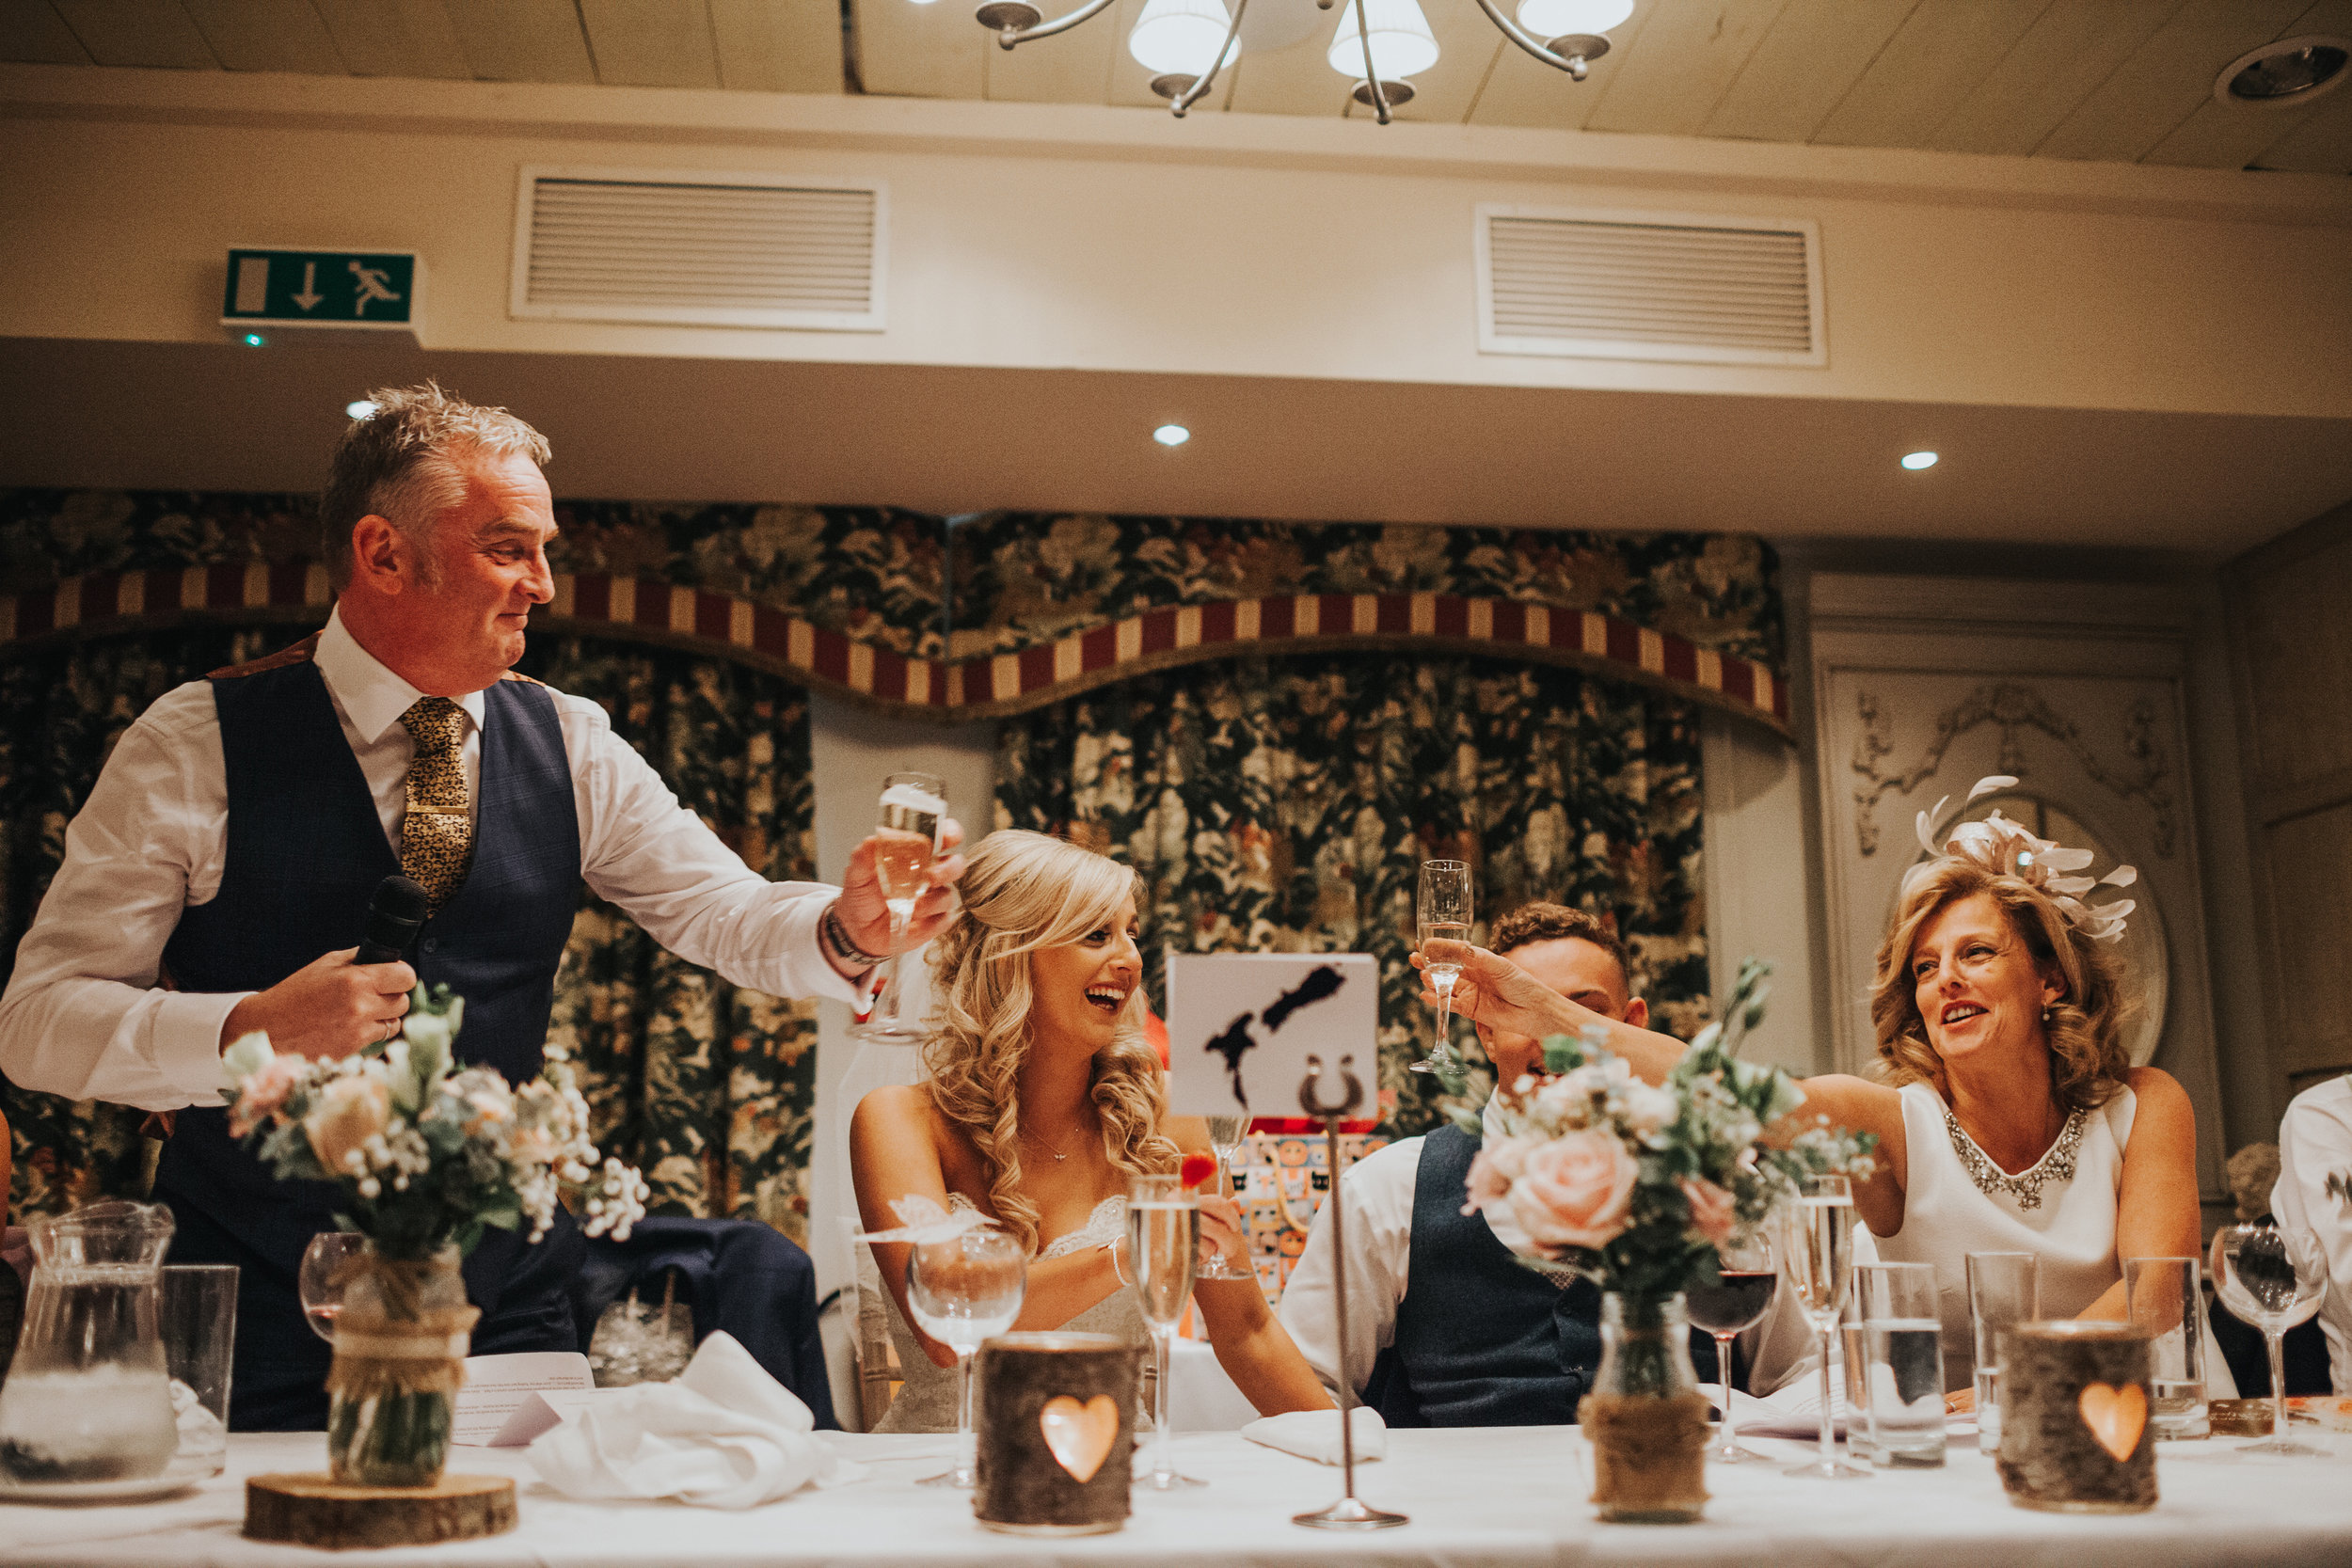 Father or the bride makes a toast.